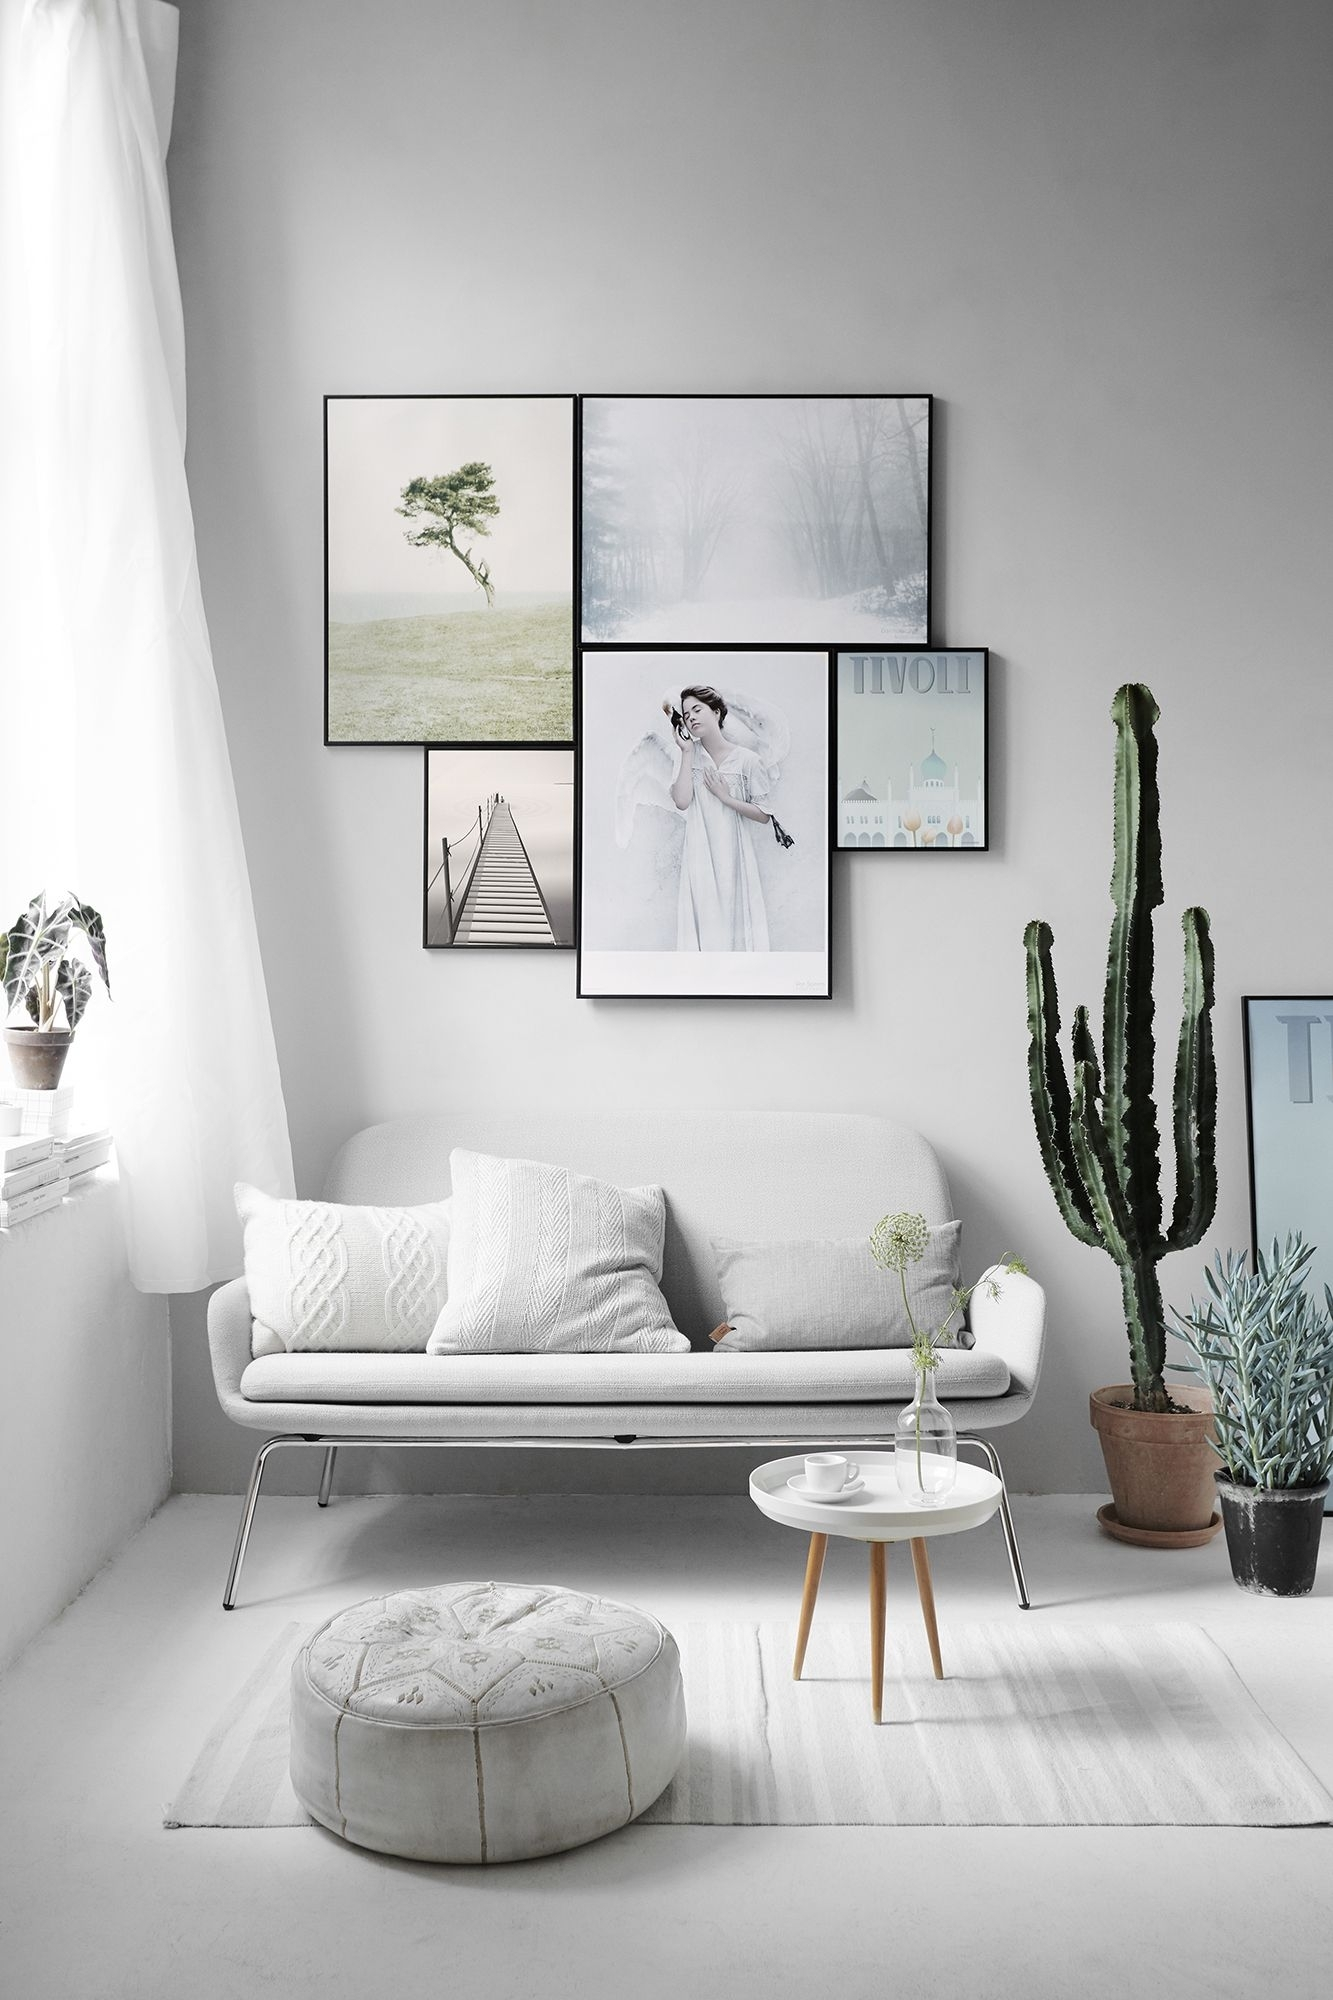 10 Scandinavian Style Interiors Ideas | Pastel Interior With Regard To Most Recently Released Scandinavian Fabric Wall Art (View 1 of 15)